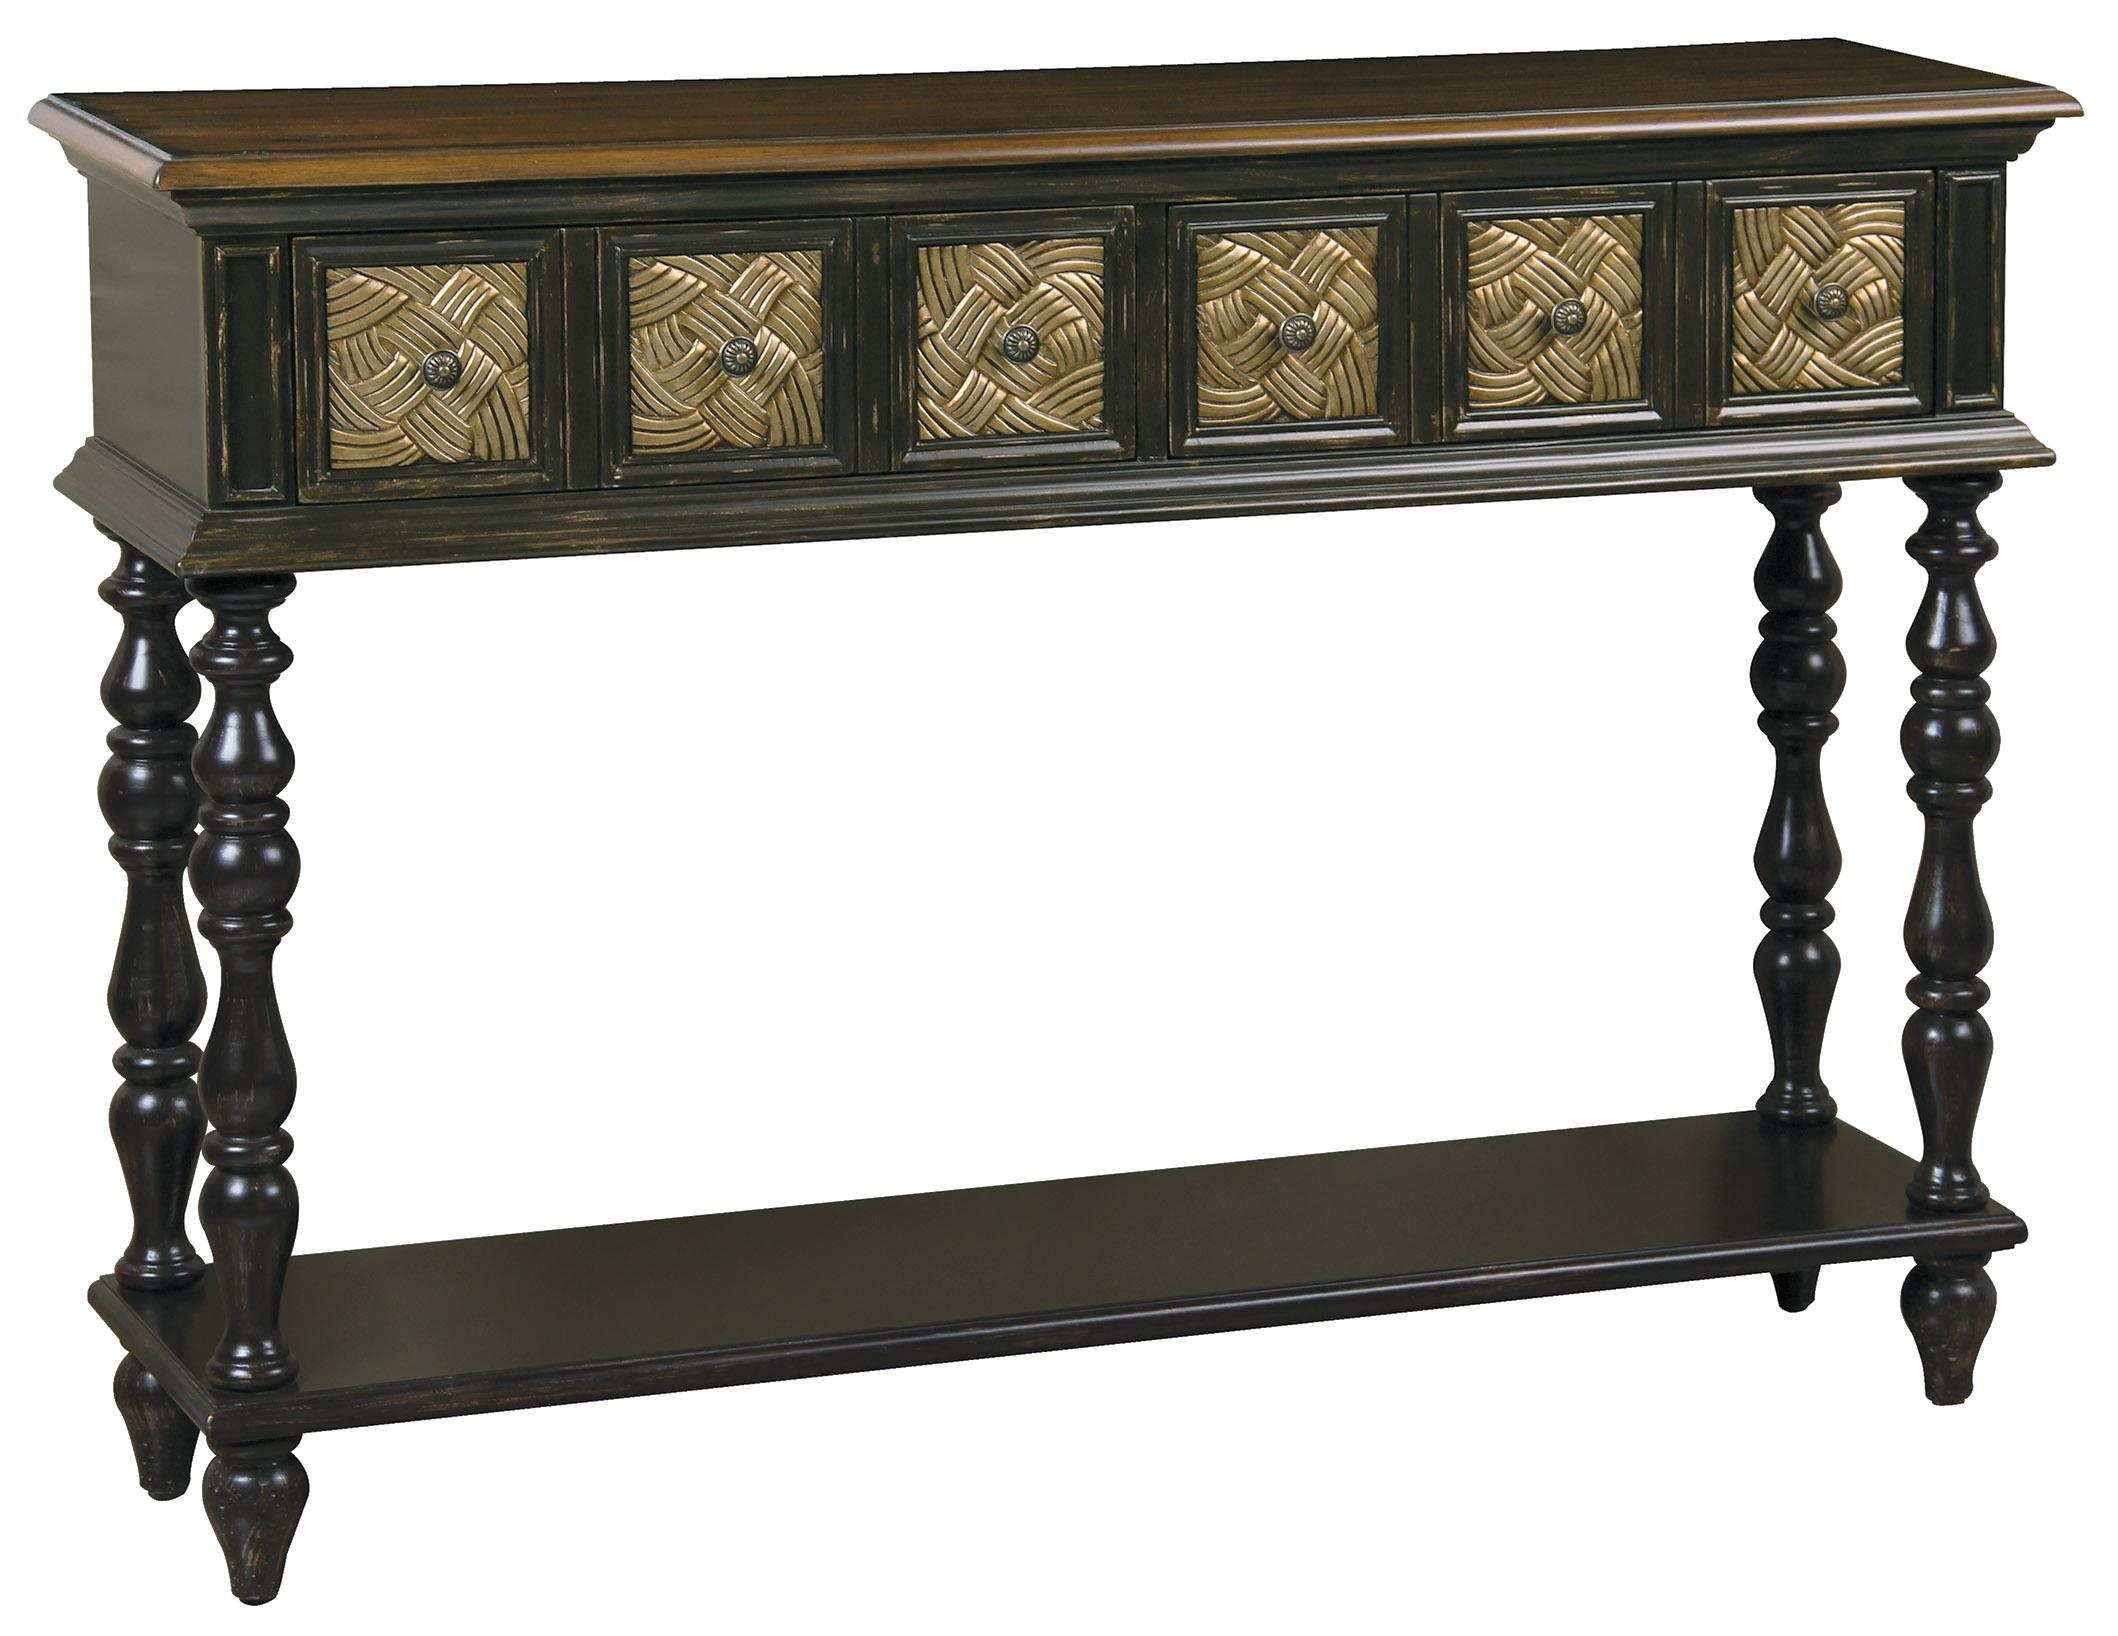 Pulaski Furniture Accents Console Table - Item Number: 549235